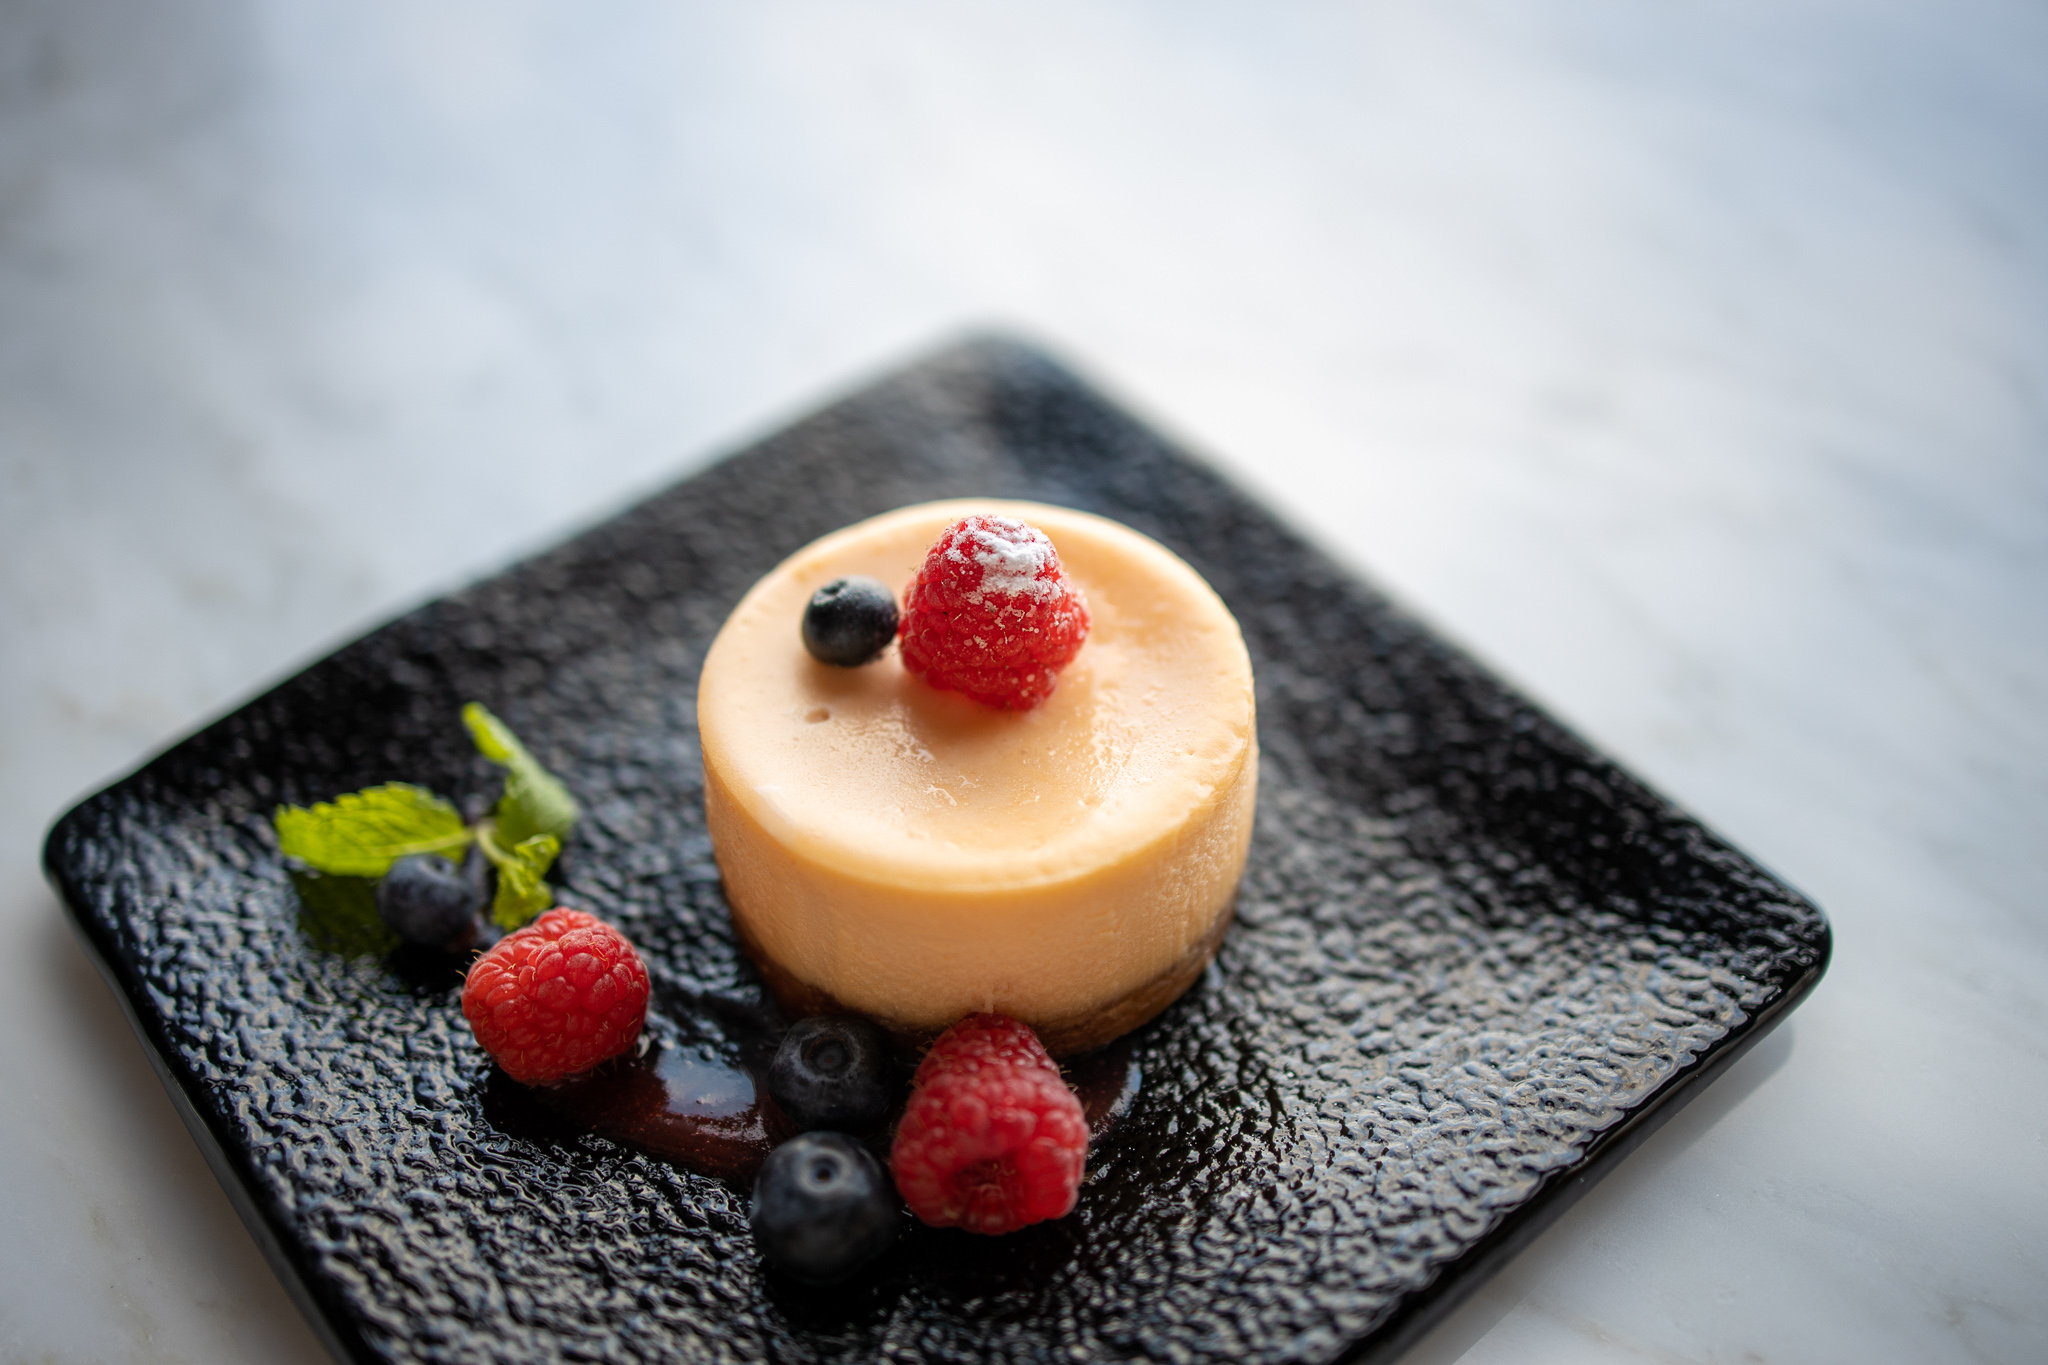 Cheese Cake in Tokyo